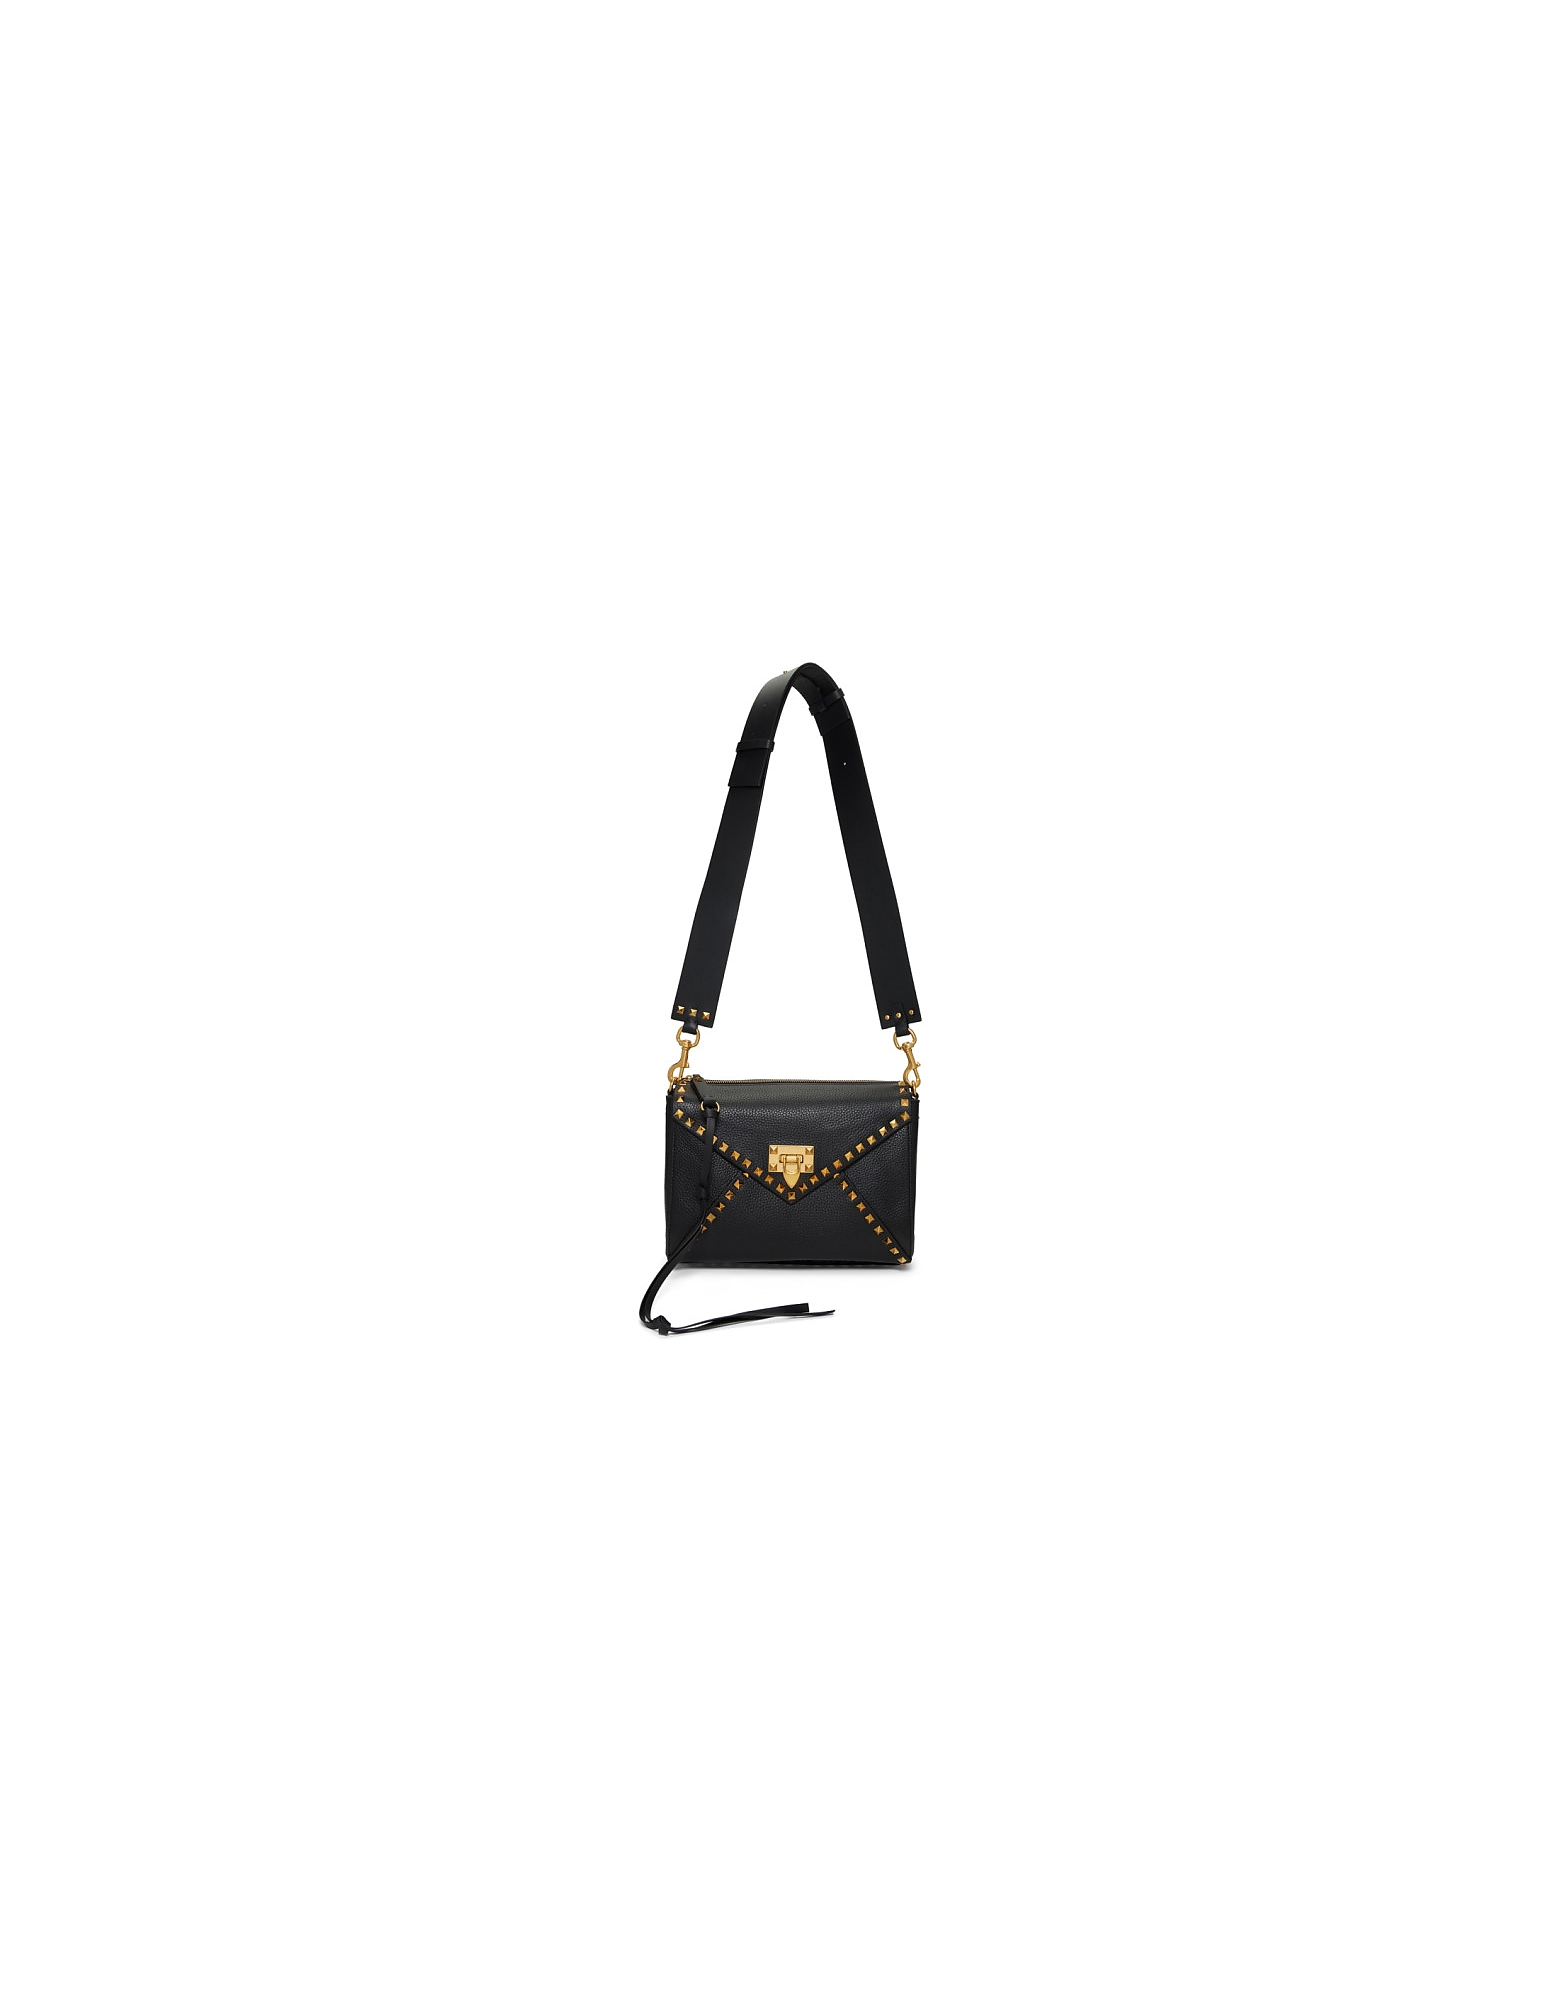 Valentino Designer Handbags, Black Valentino Garavani Medium Rockstud Hype Shoulder Bag